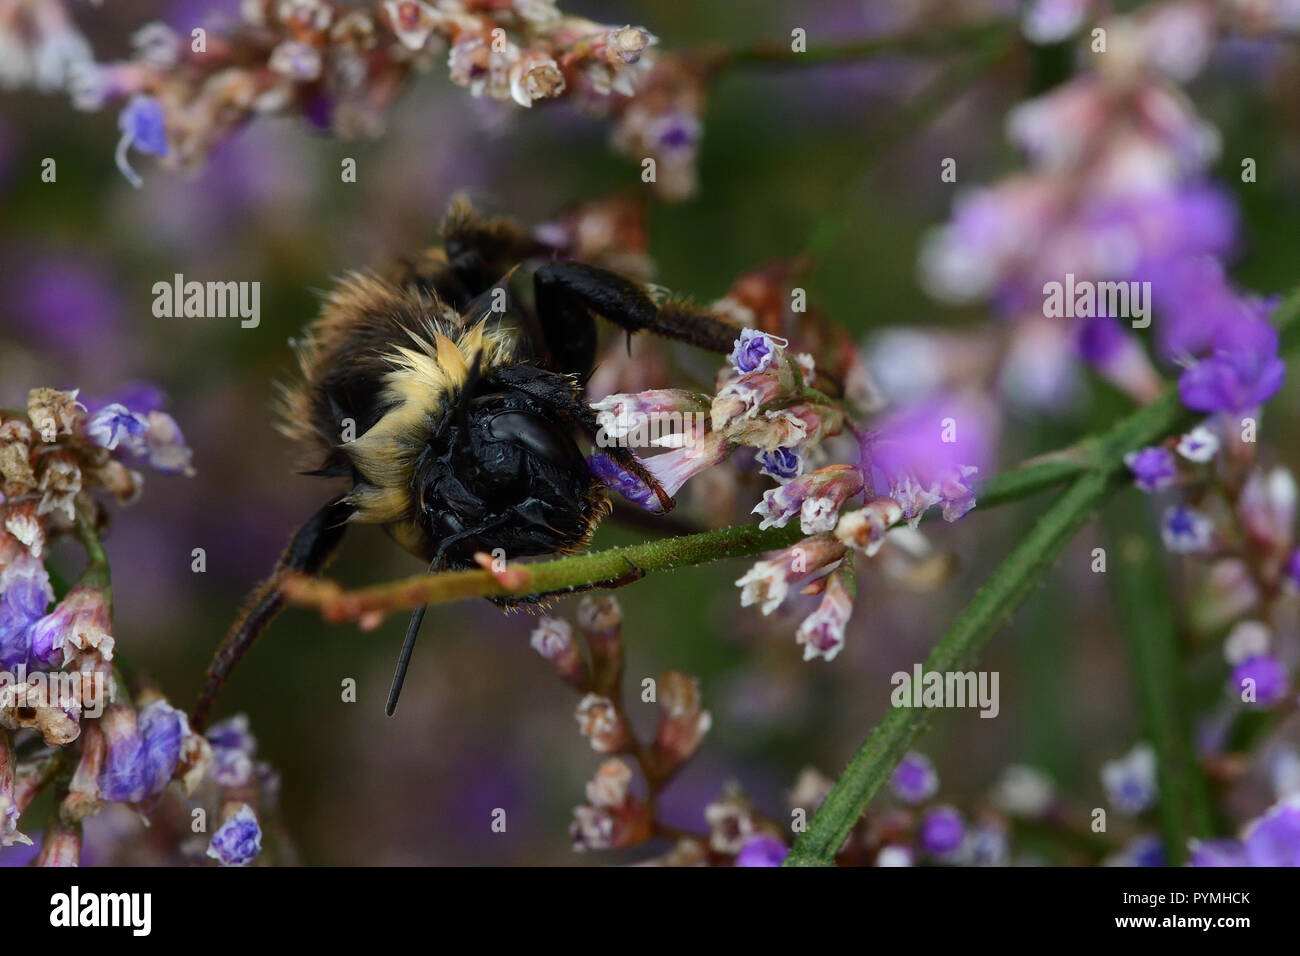 Macro shot of a wet bumble bee on pink flowers - Stock Image